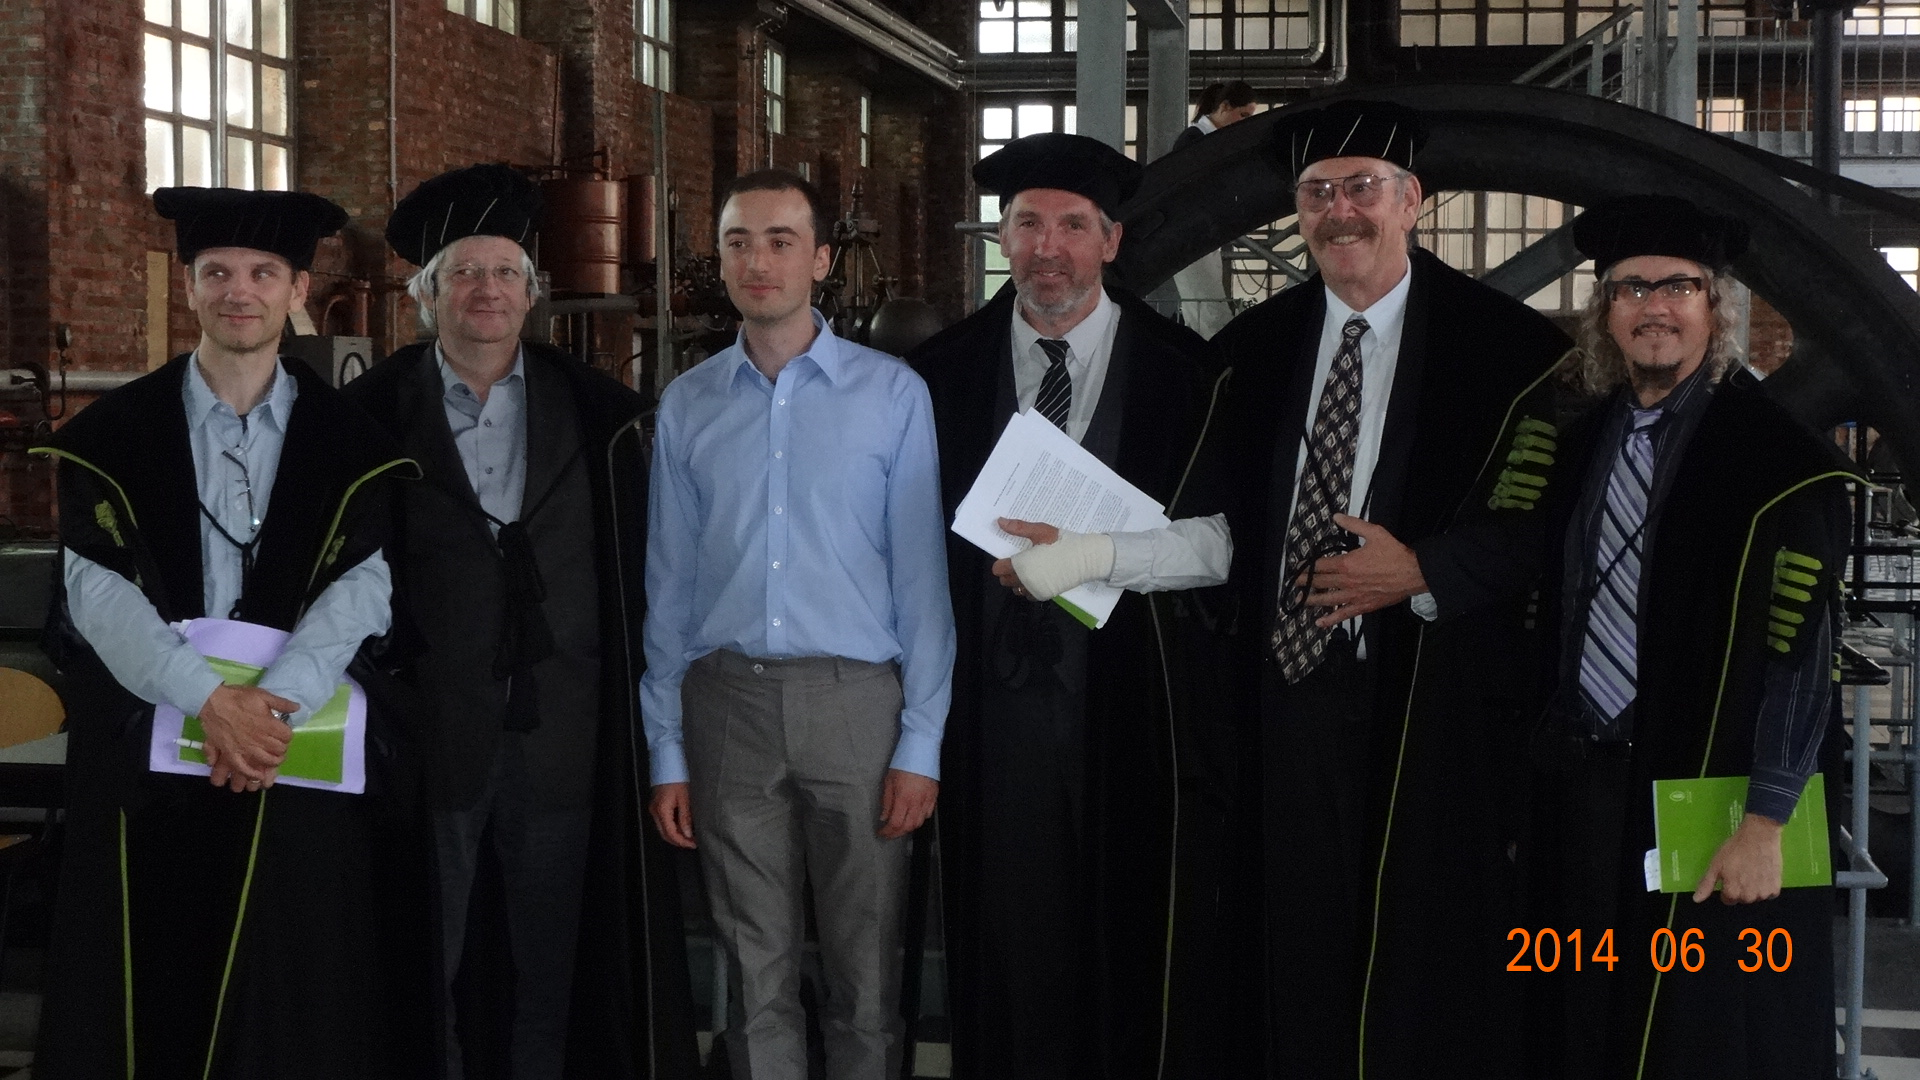 phd thesis leuven Participants who successfully complete their doctoral research and defend their thesis will be awarded a joint phd degree from the ghent university, faculty of economics and business administration and from ku leuven, faculty of economics and business.